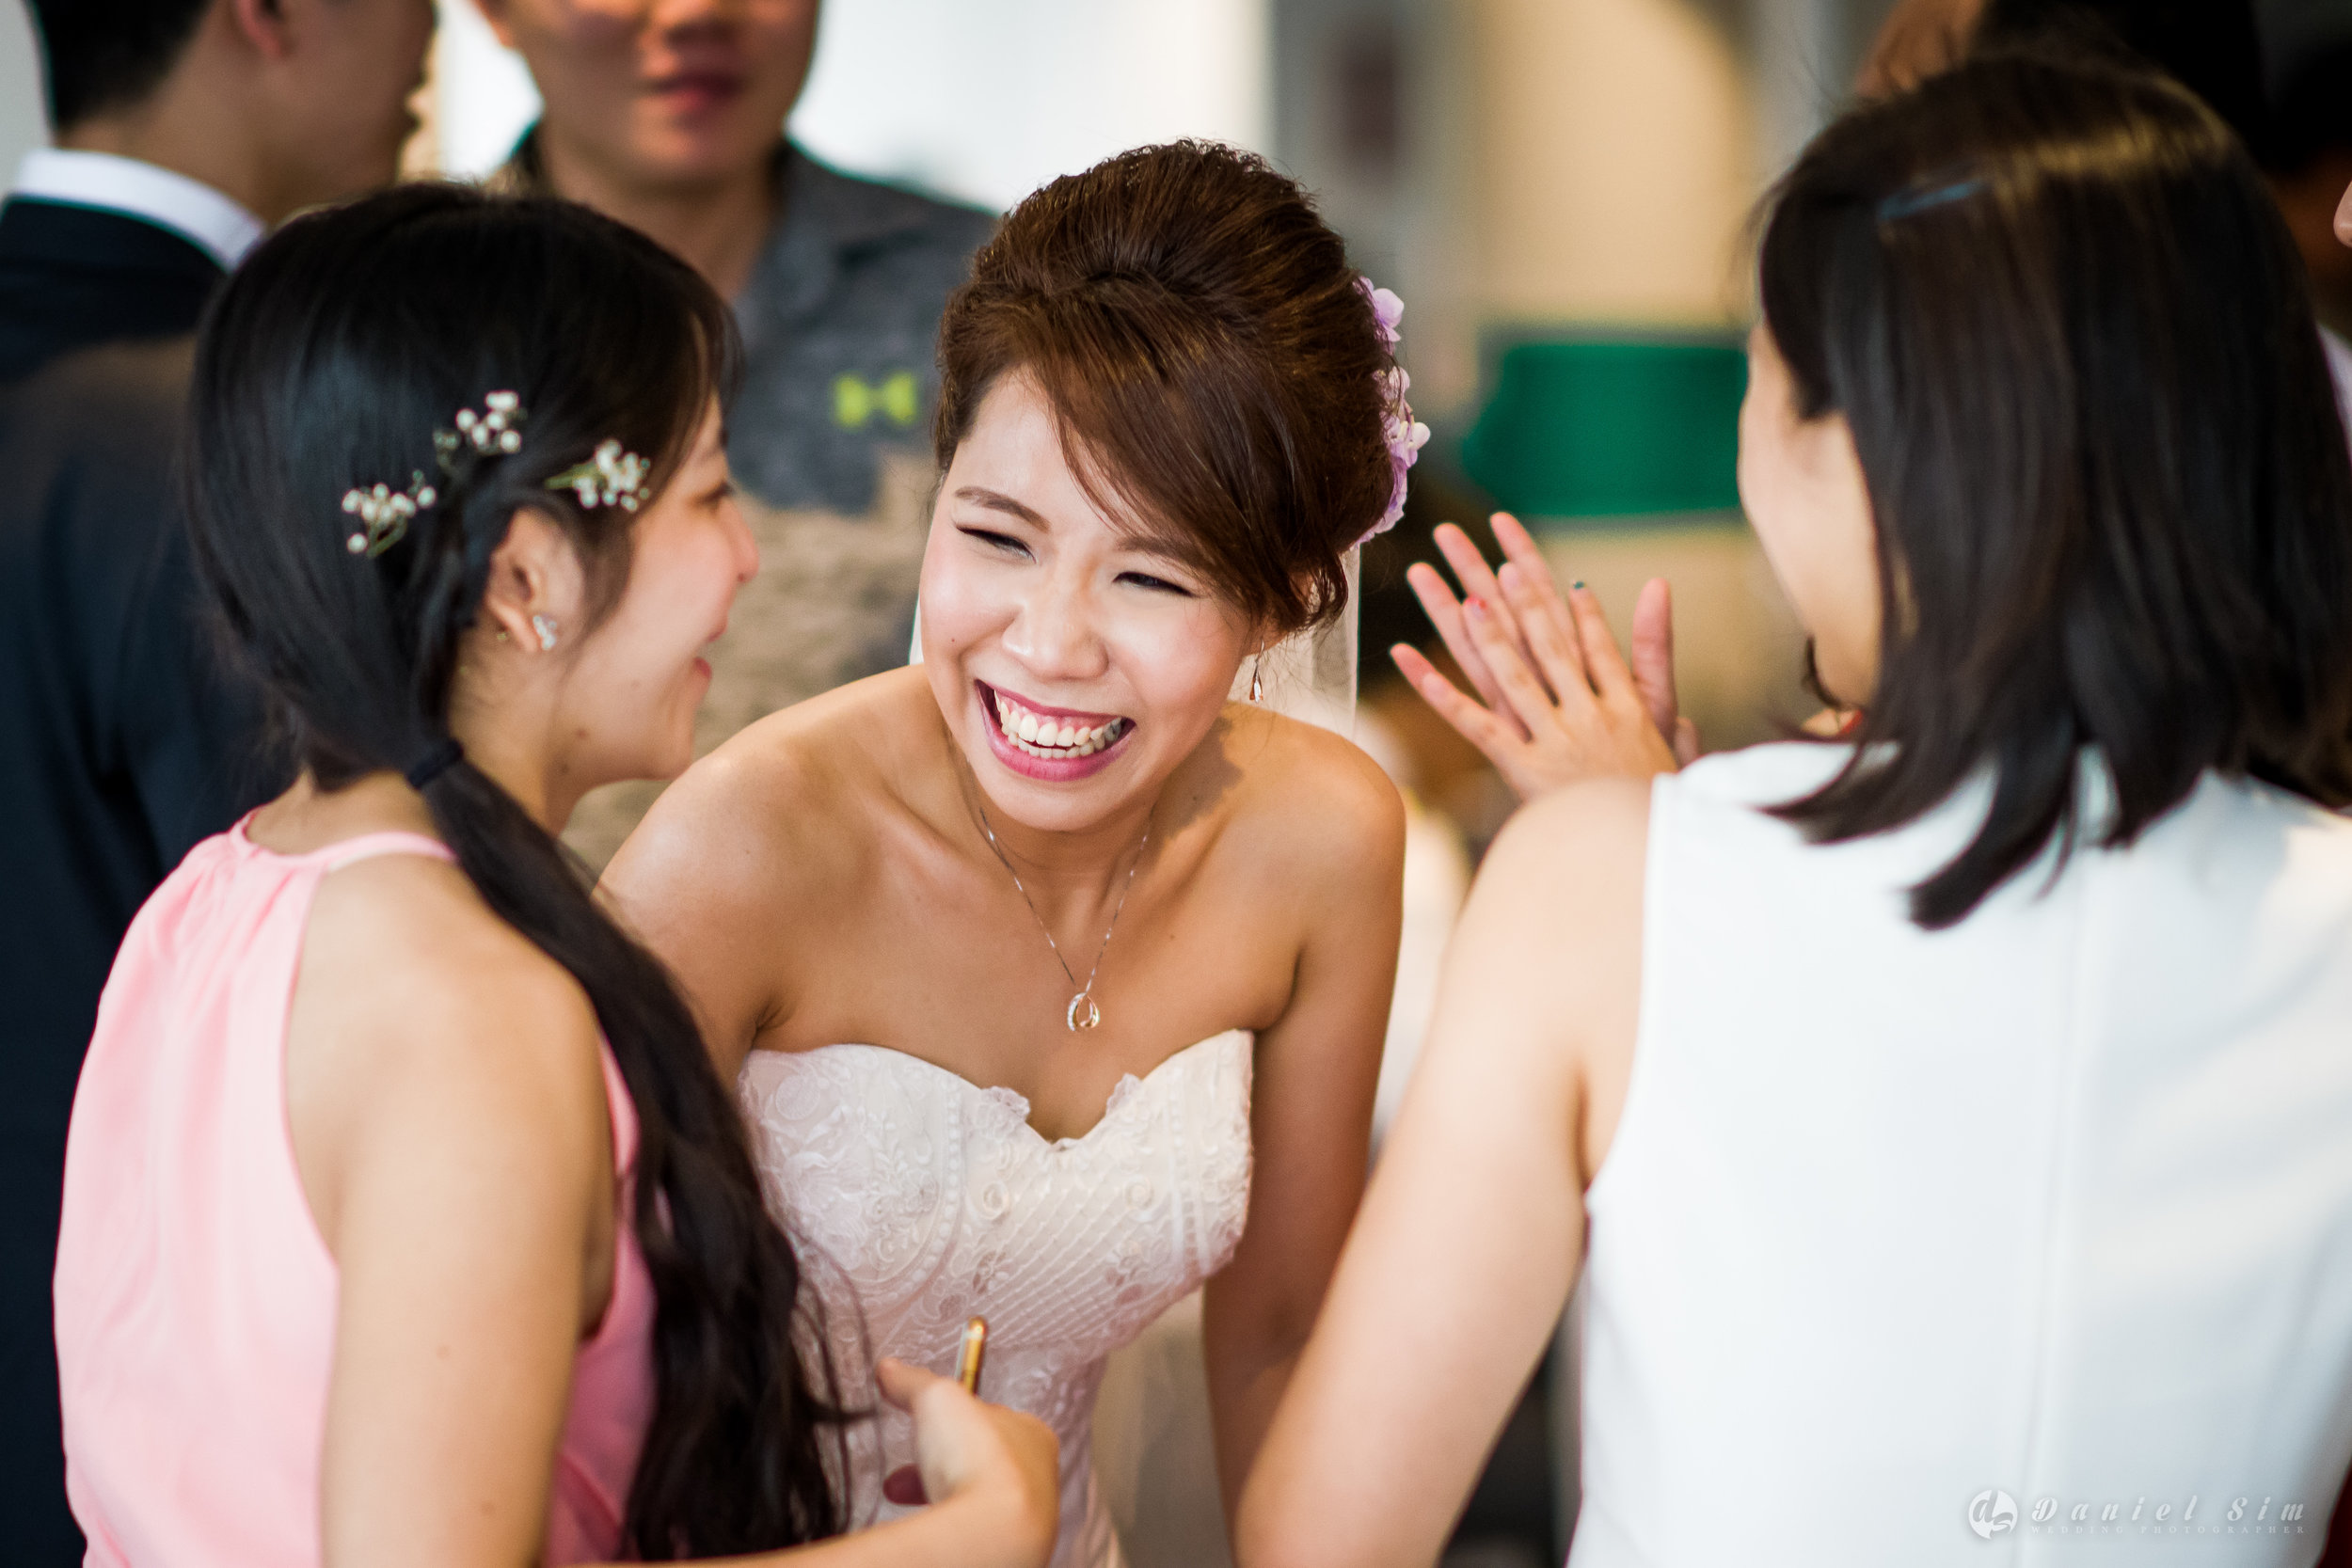 bride-talk-laugh-friends-church-wedding-love-singapore.jpg